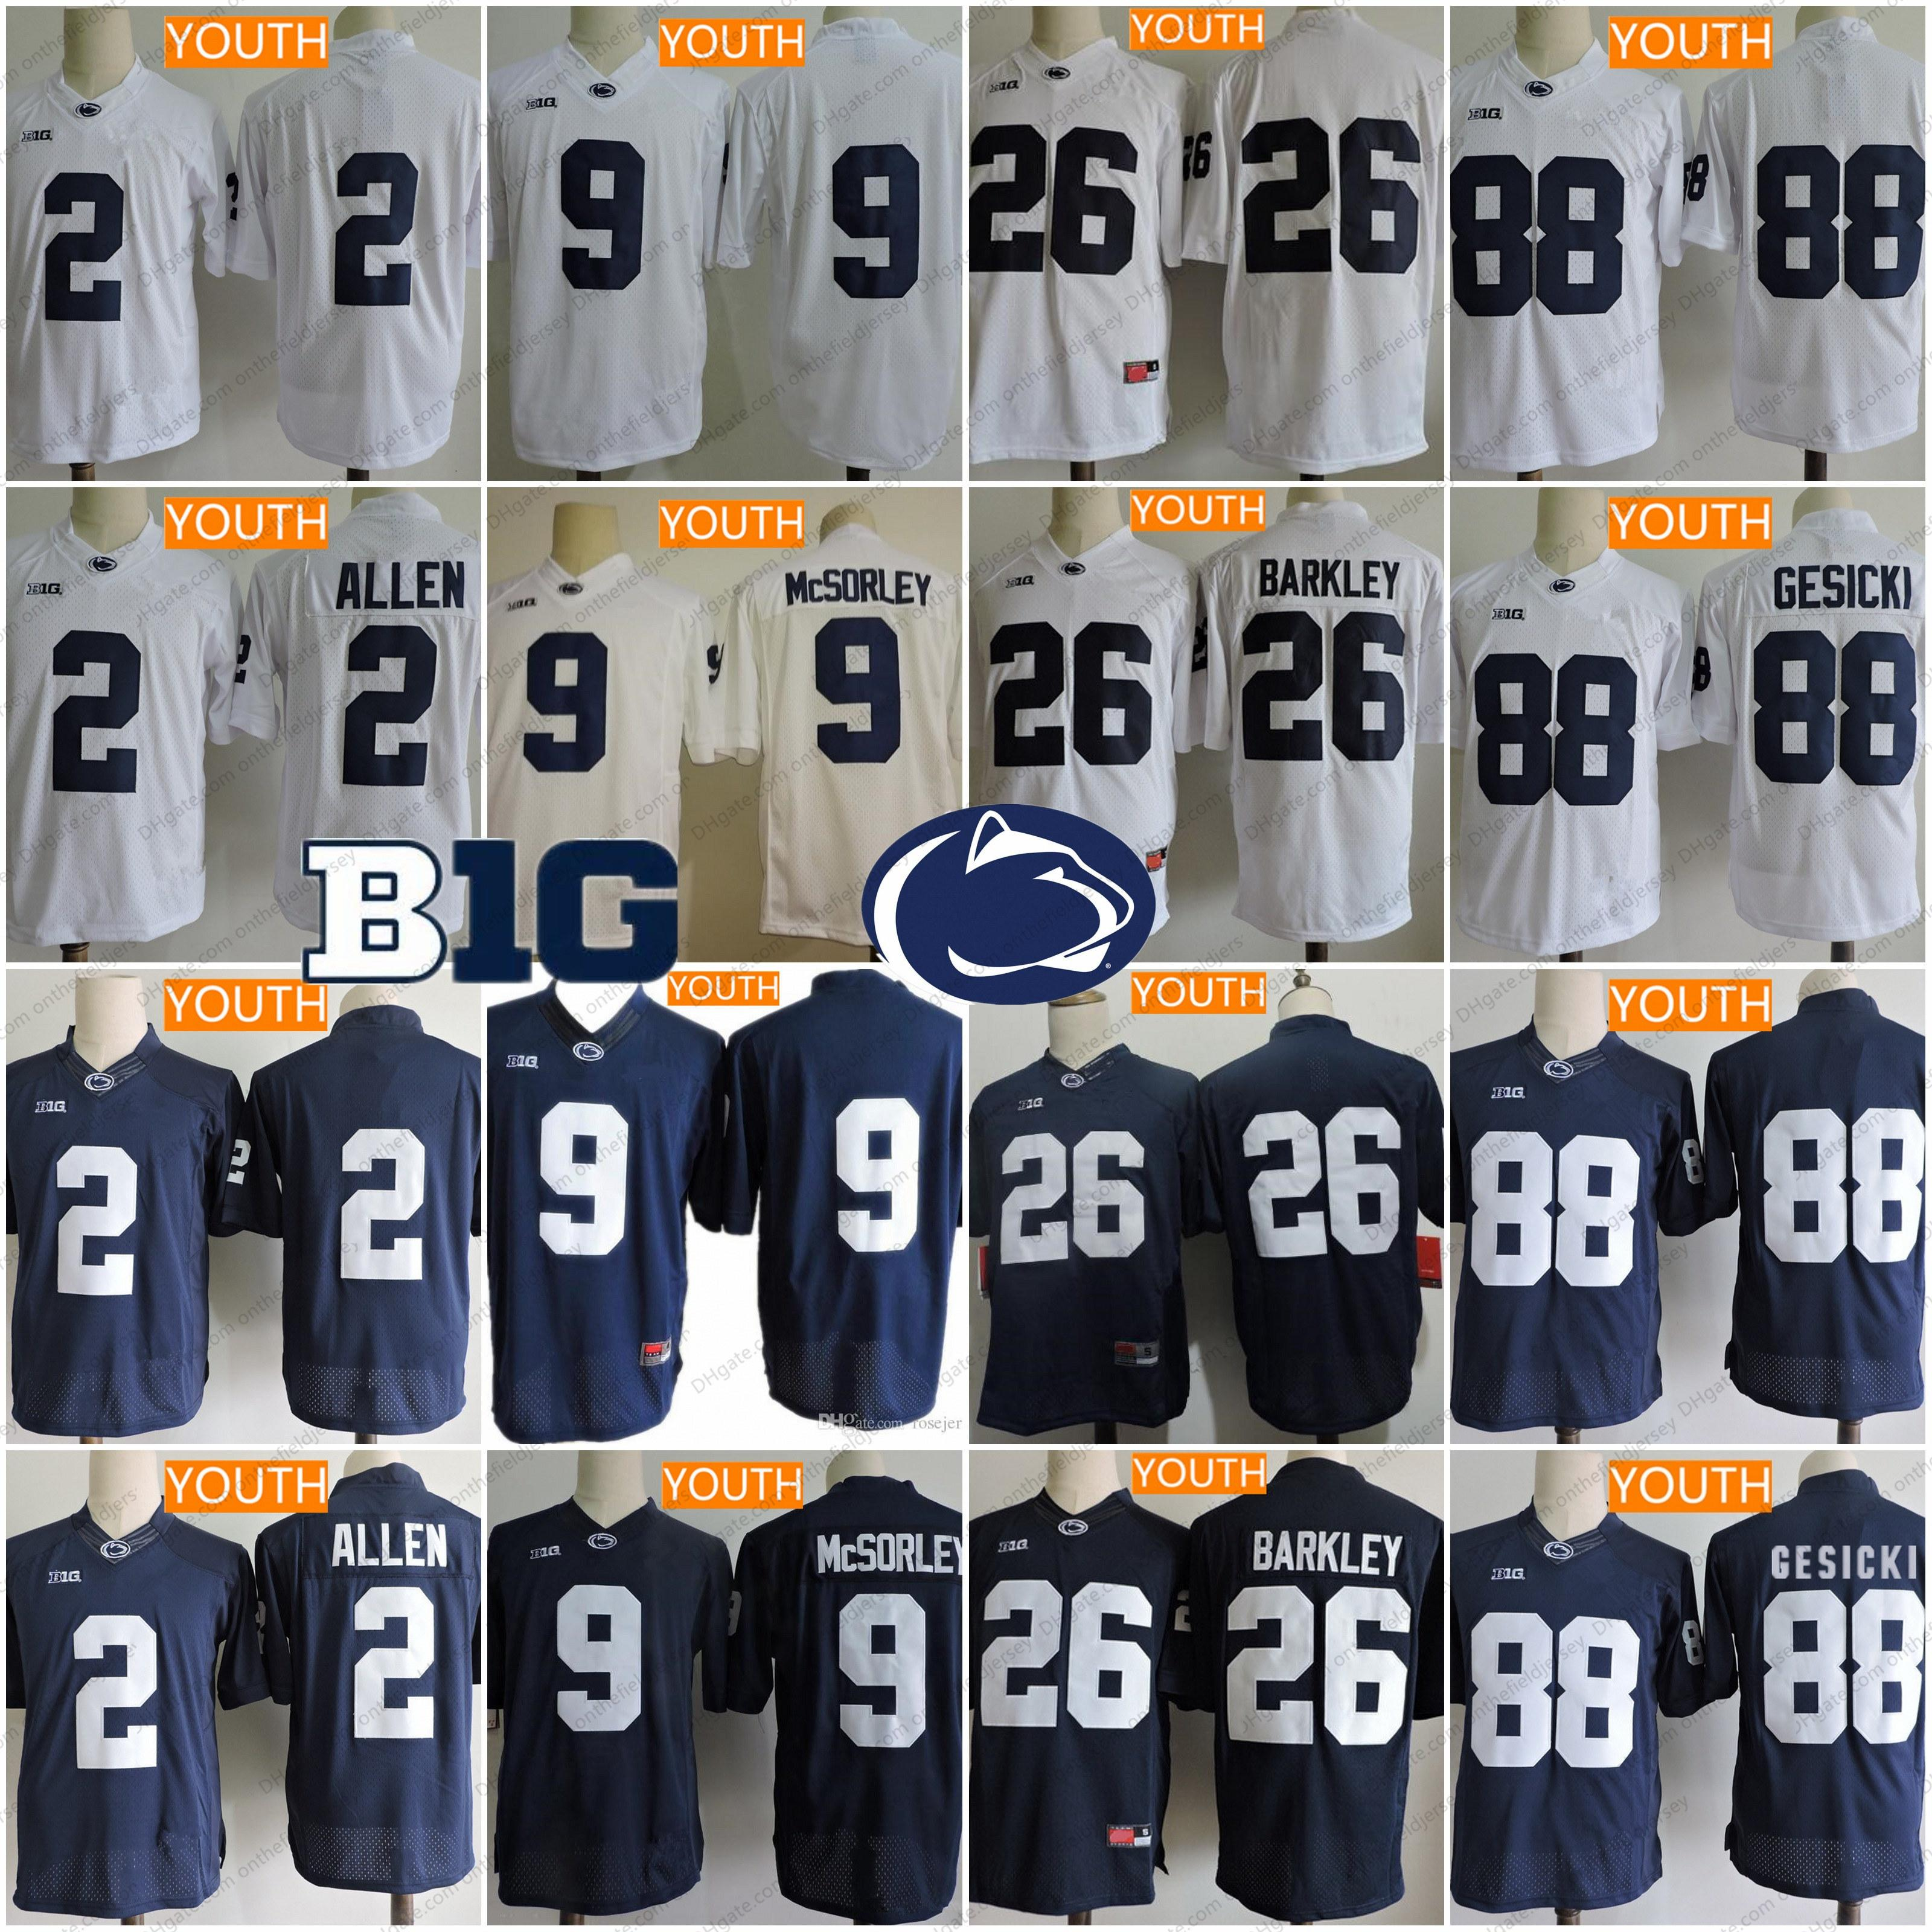 20a70c4d4 2019 Penn State Nittany Lions Youth Kids  9 Trace McSorley 26 Saquon Barkley   2 Allen  88 Gesicki No Name Navy Blue White NCAA College Jerseys From ...